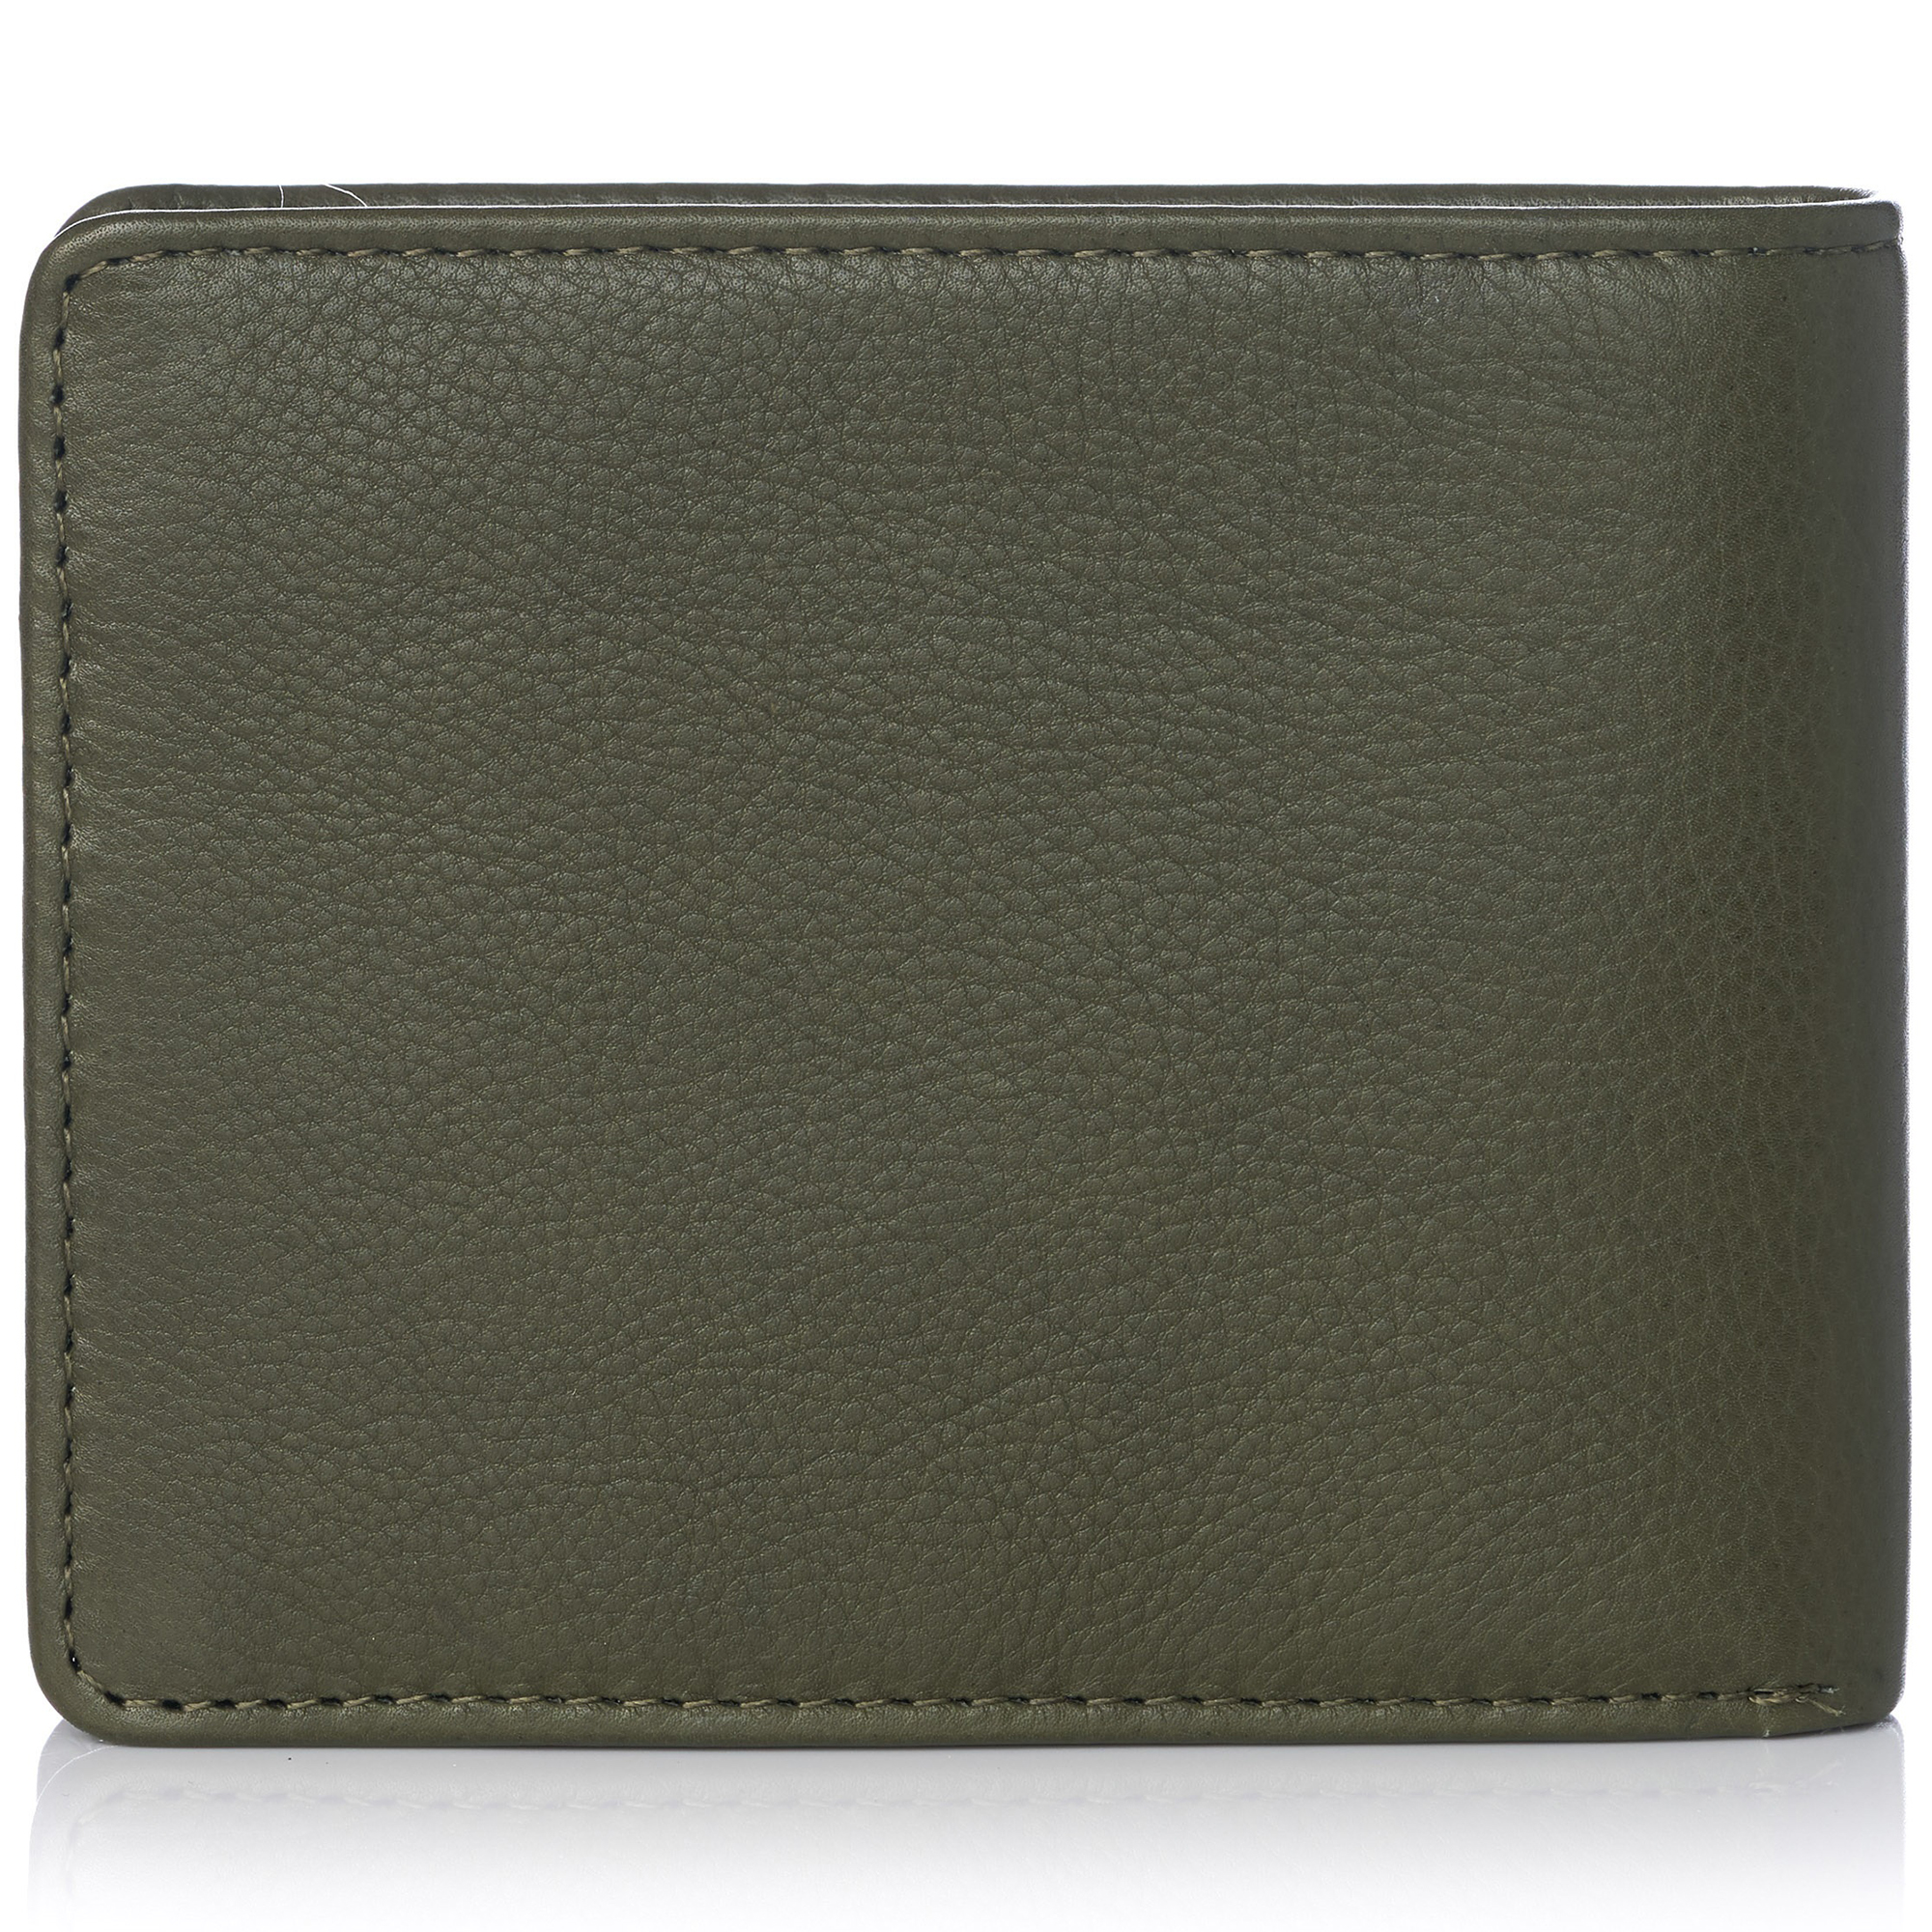 miniature 116 - Alpine-Swiss-RFID-Mens-Wallet-Deluxe-Capacity-Passcase-Bifold-Two-Bill-Sections